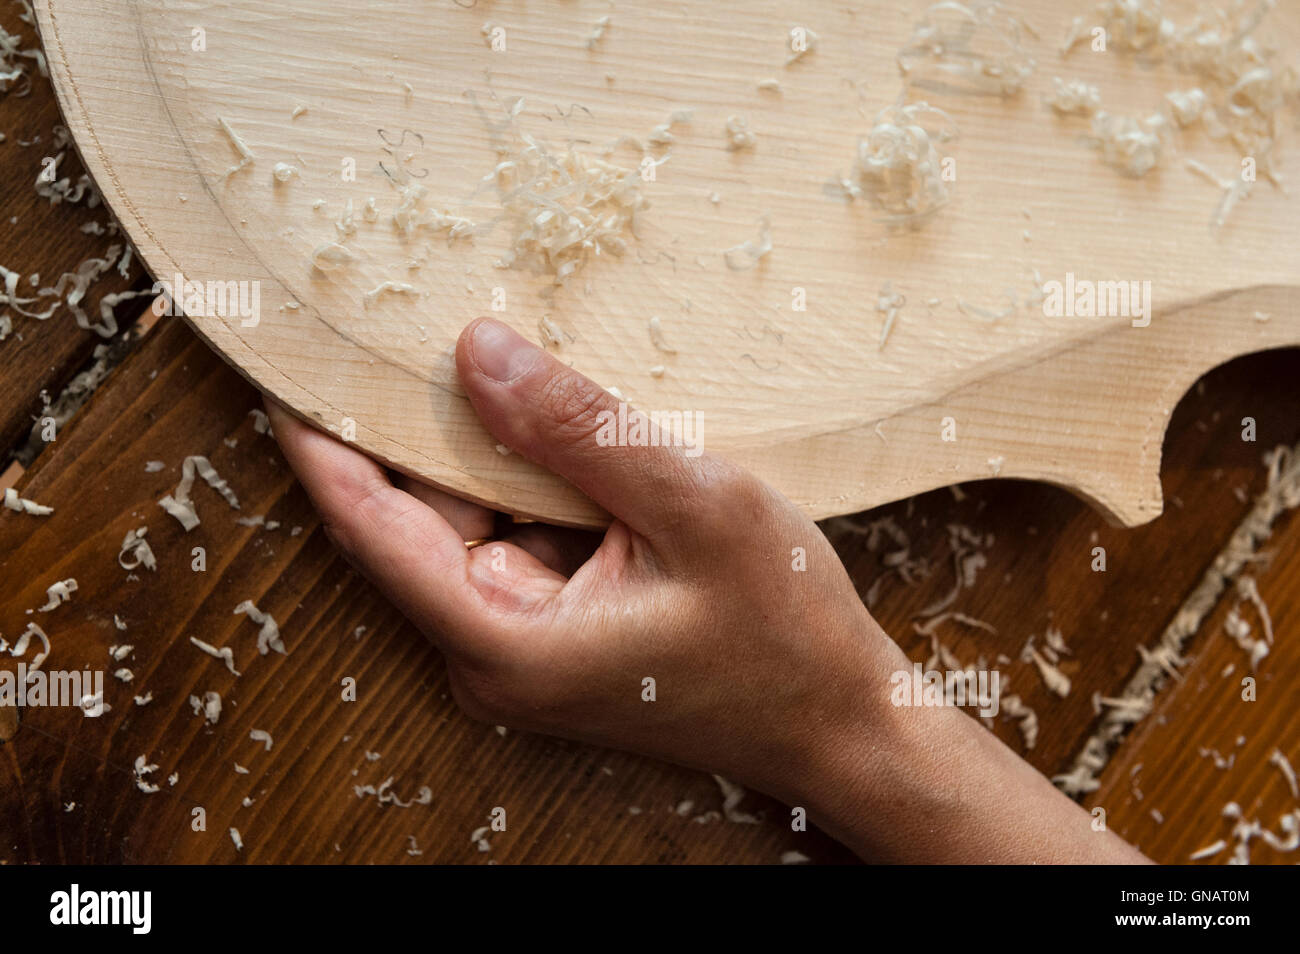 The Forest of Violins, Paneveggio, Italy. Giovanna Chittò, luthier (violin maker), shaping wood for a cello - Stock Image